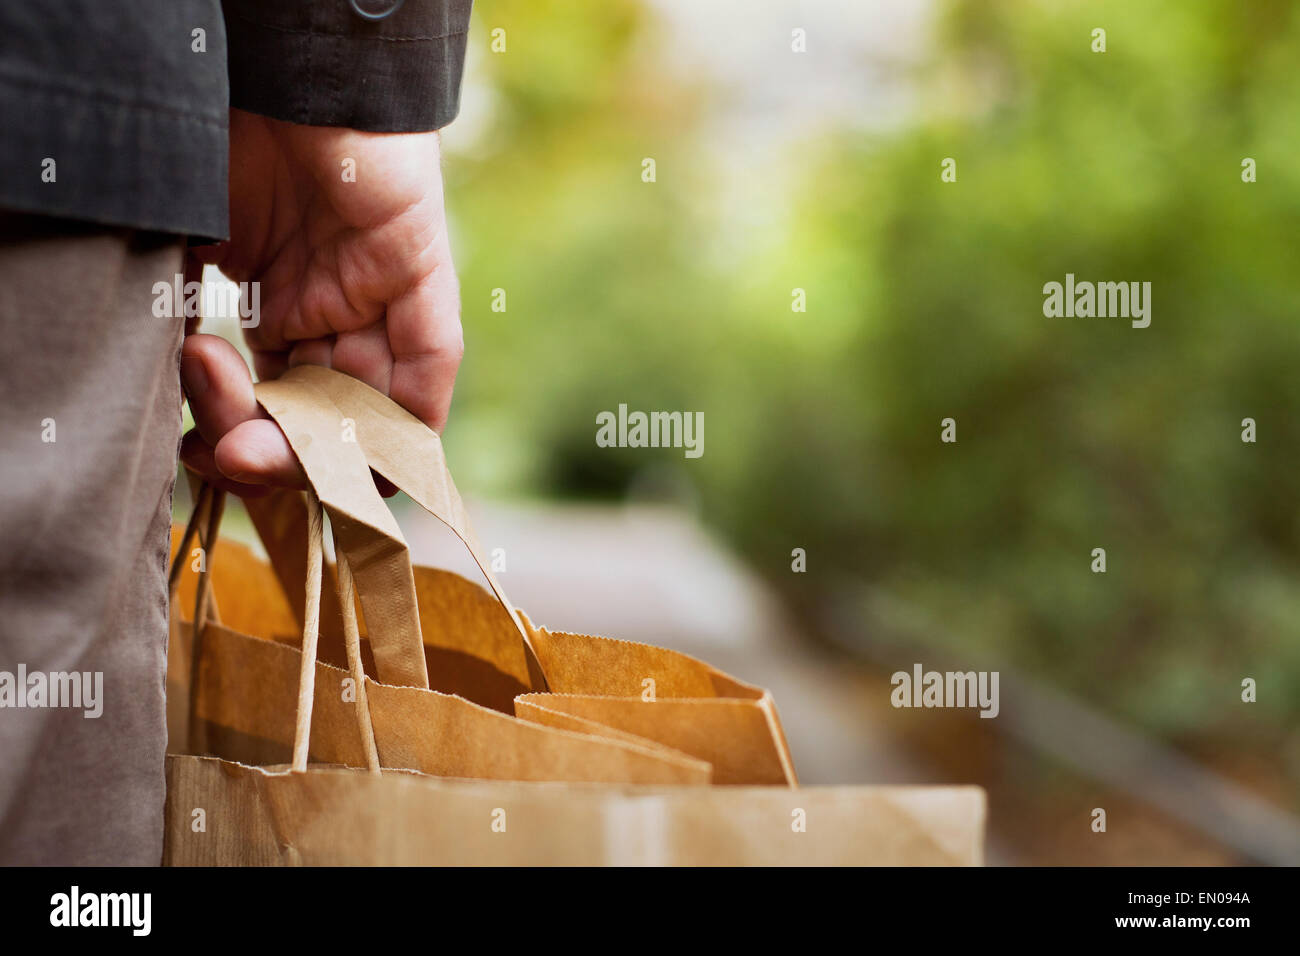 consumer basket, close up of paper shopping bags in male hand - Stock Image